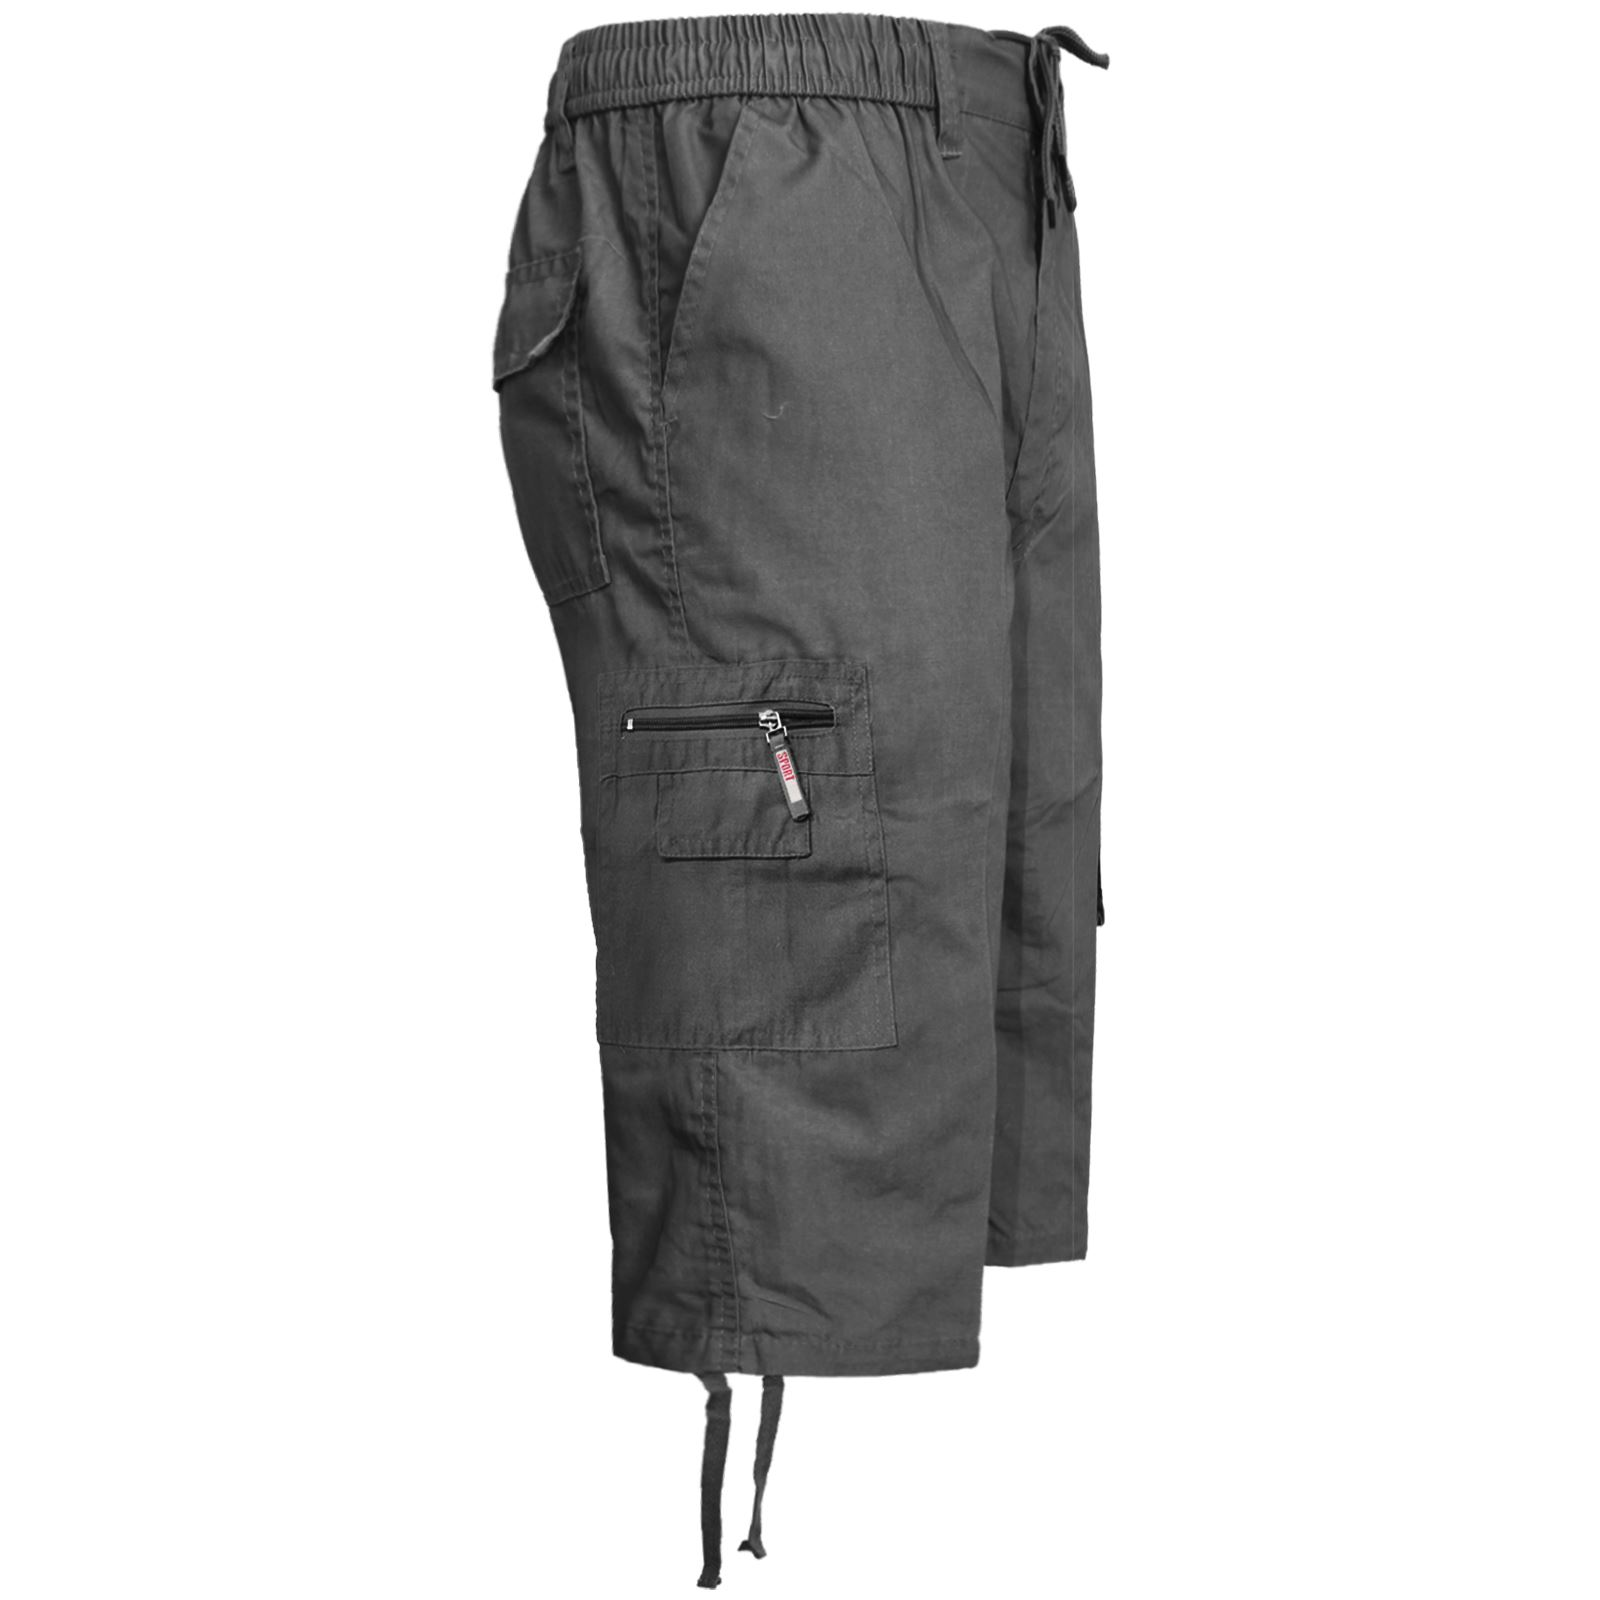 MENS-ELASTICATED-KNEE-LENGTH-OR-3-4-SHORTS-CARGO-COMBAT-MULTI-POCKET-SUMMER-PANT thumbnail 30